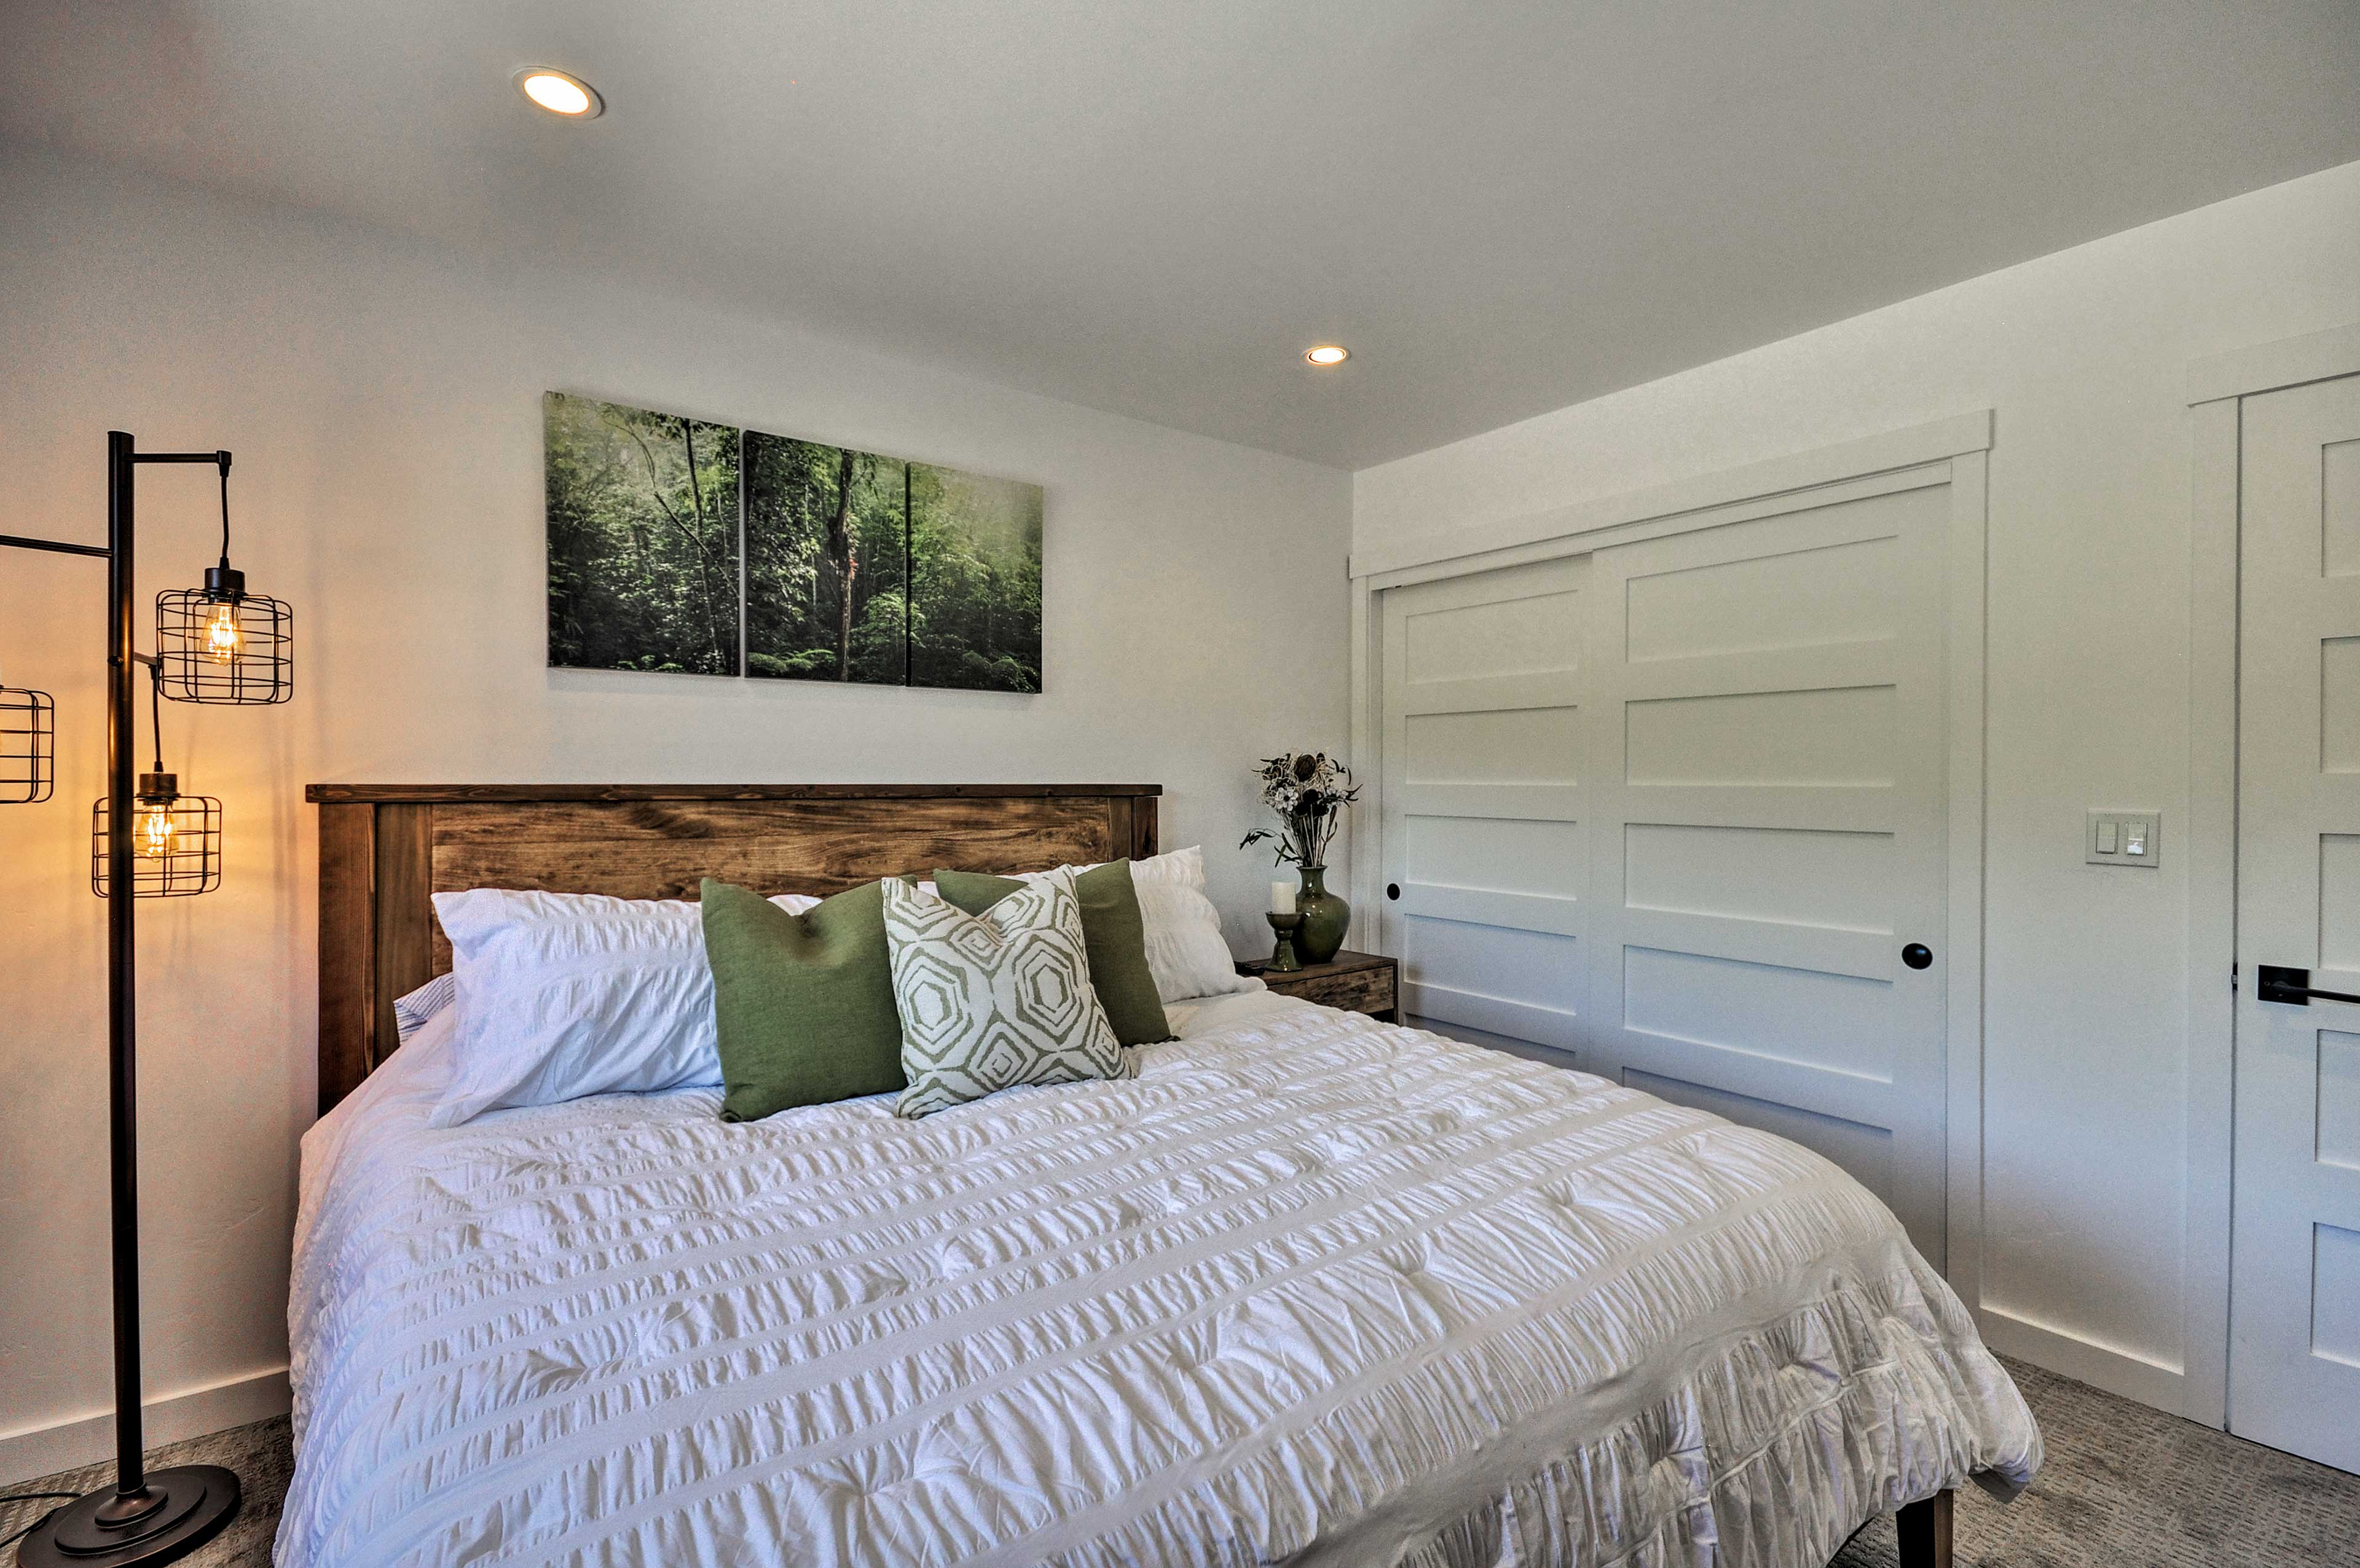 Two people can sleep comfortably in this king bed.